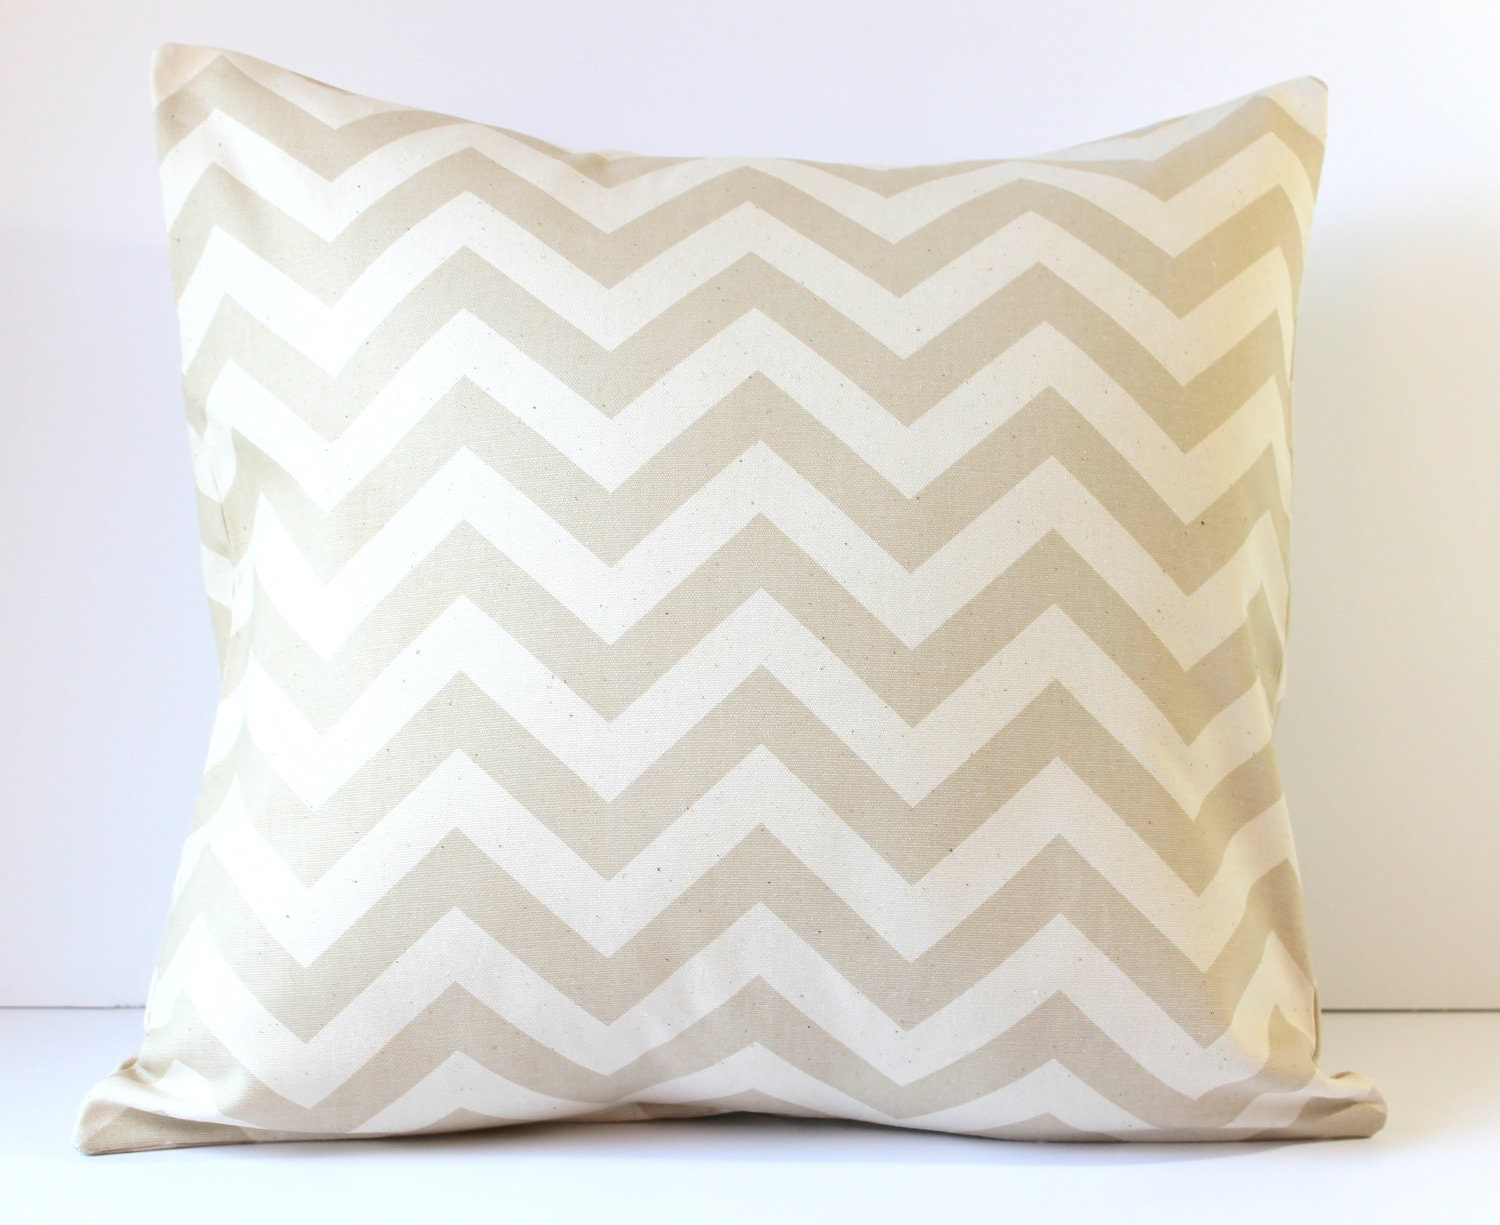 Beige Throw Pillow Covers : Unavailable Listing on Etsy